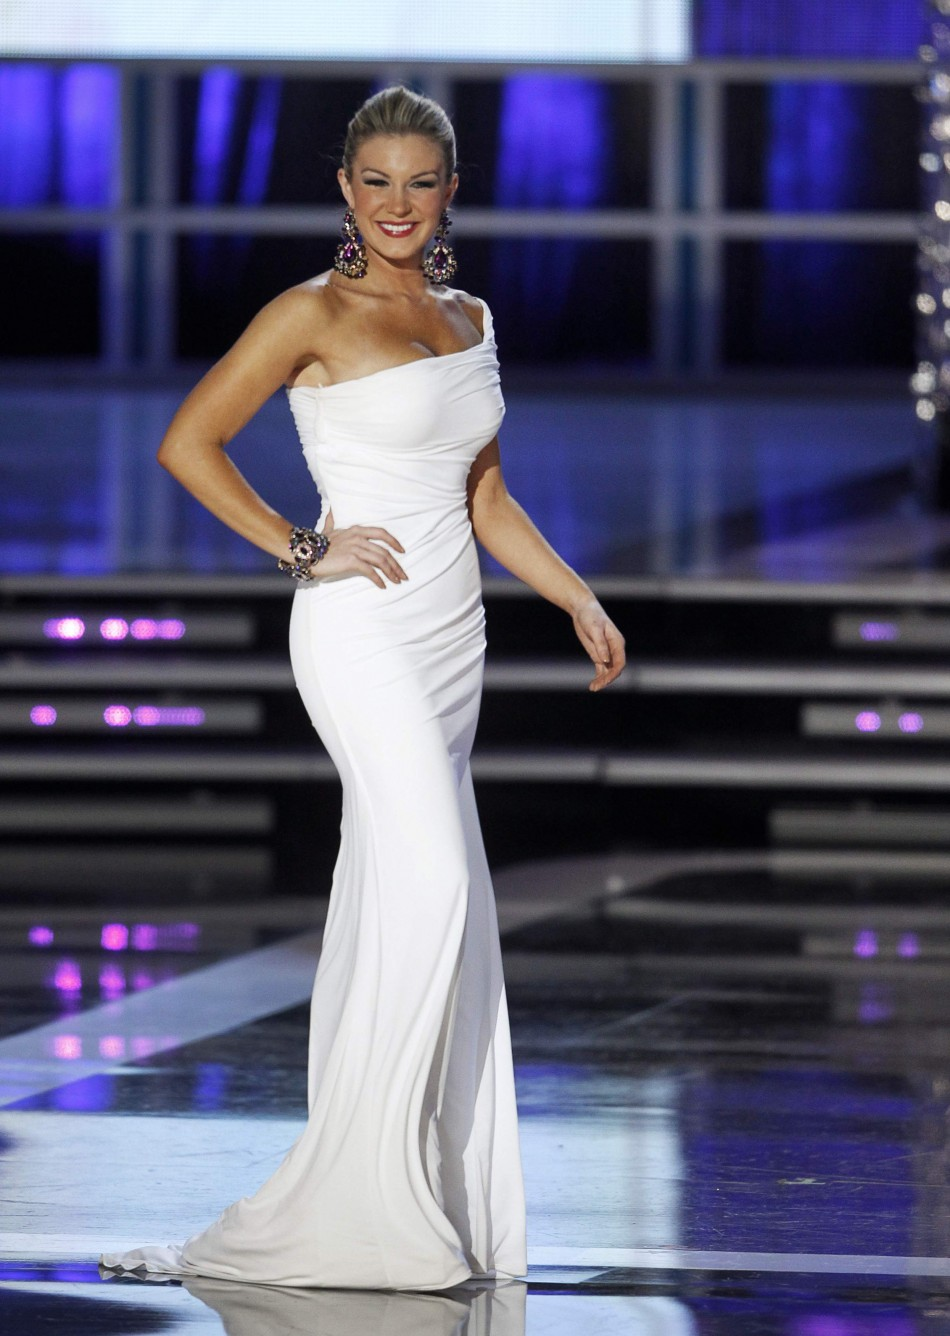 Miss America 2013 Winner Stunning Images Of Miss New York Mallory